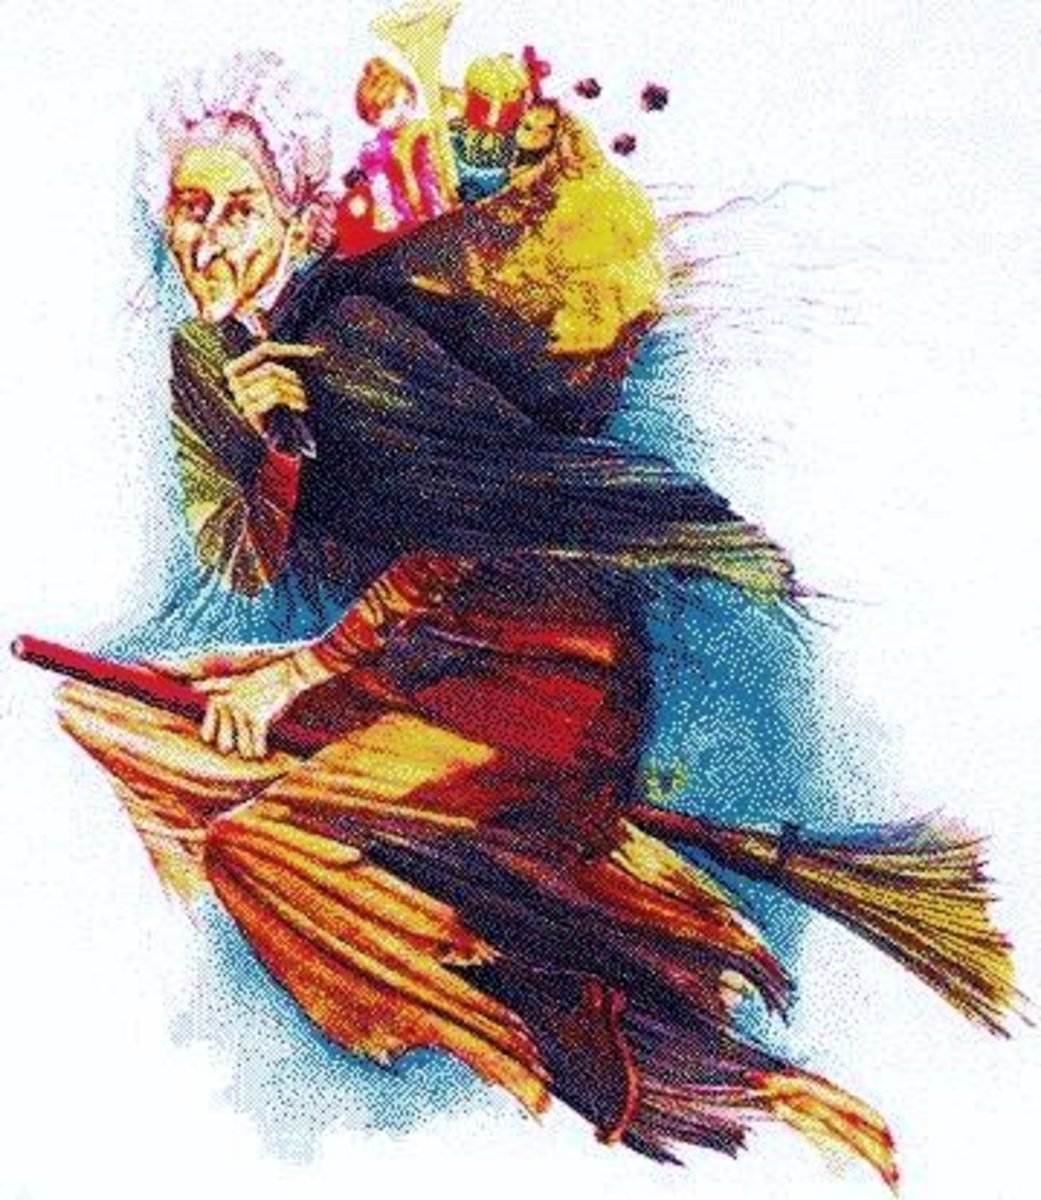 La Befana, Italy's Christmas Witch